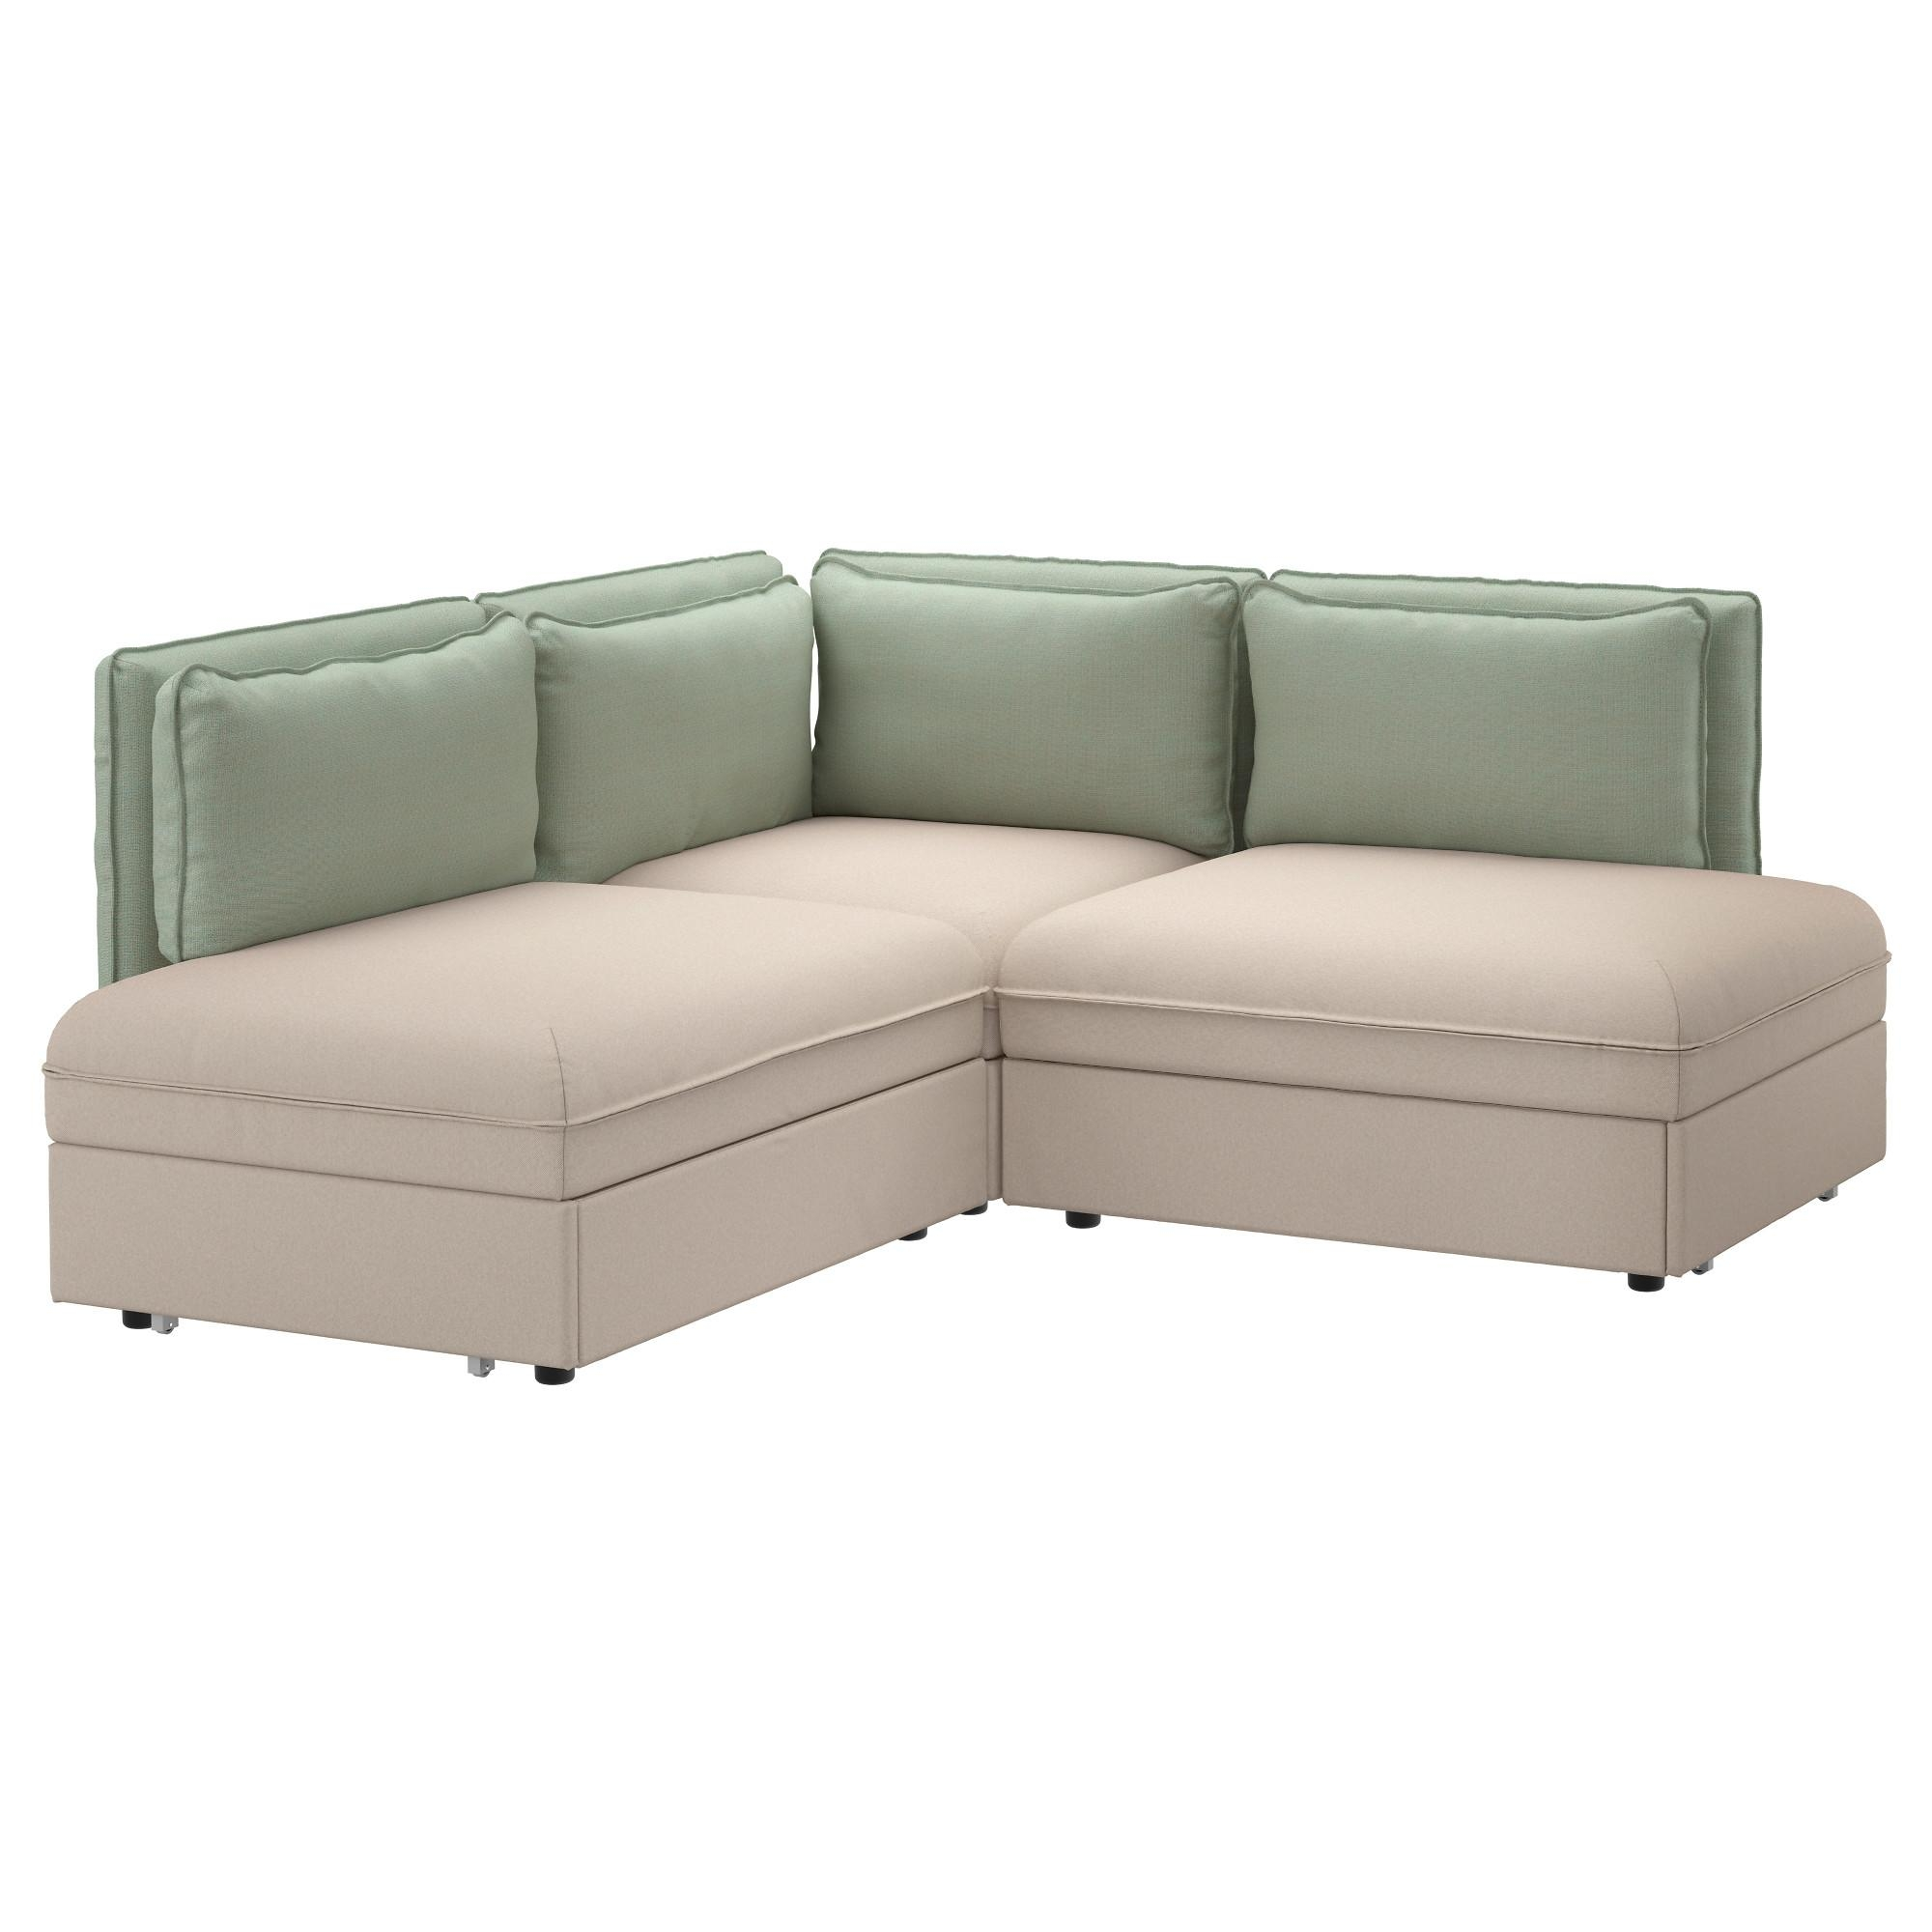 Sofa Beds & Futons – Ikea Intended For Ikea Sectional Sofa Sleeper (View 9 of 20)